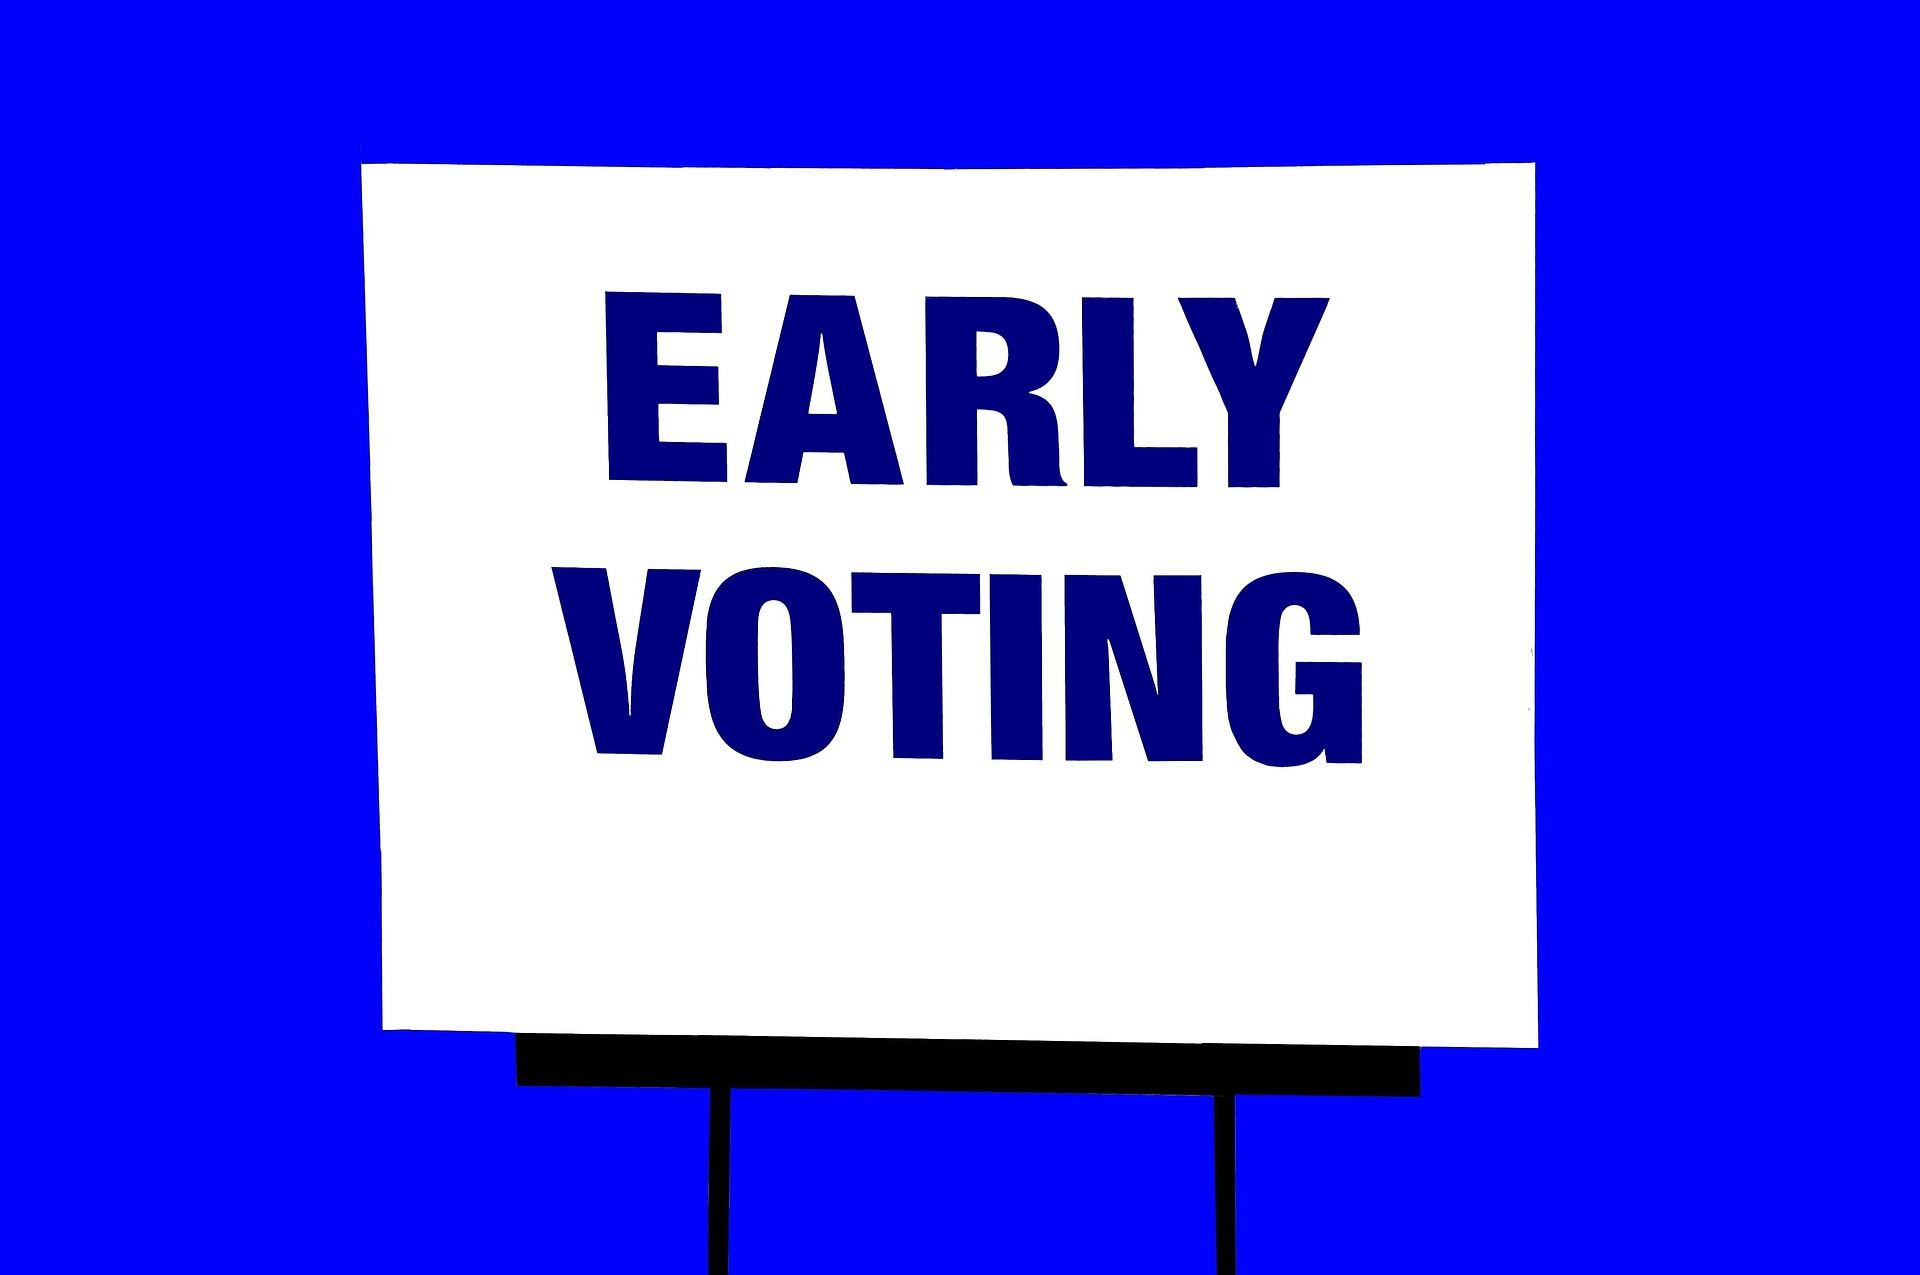 early-voting-2328912_1920